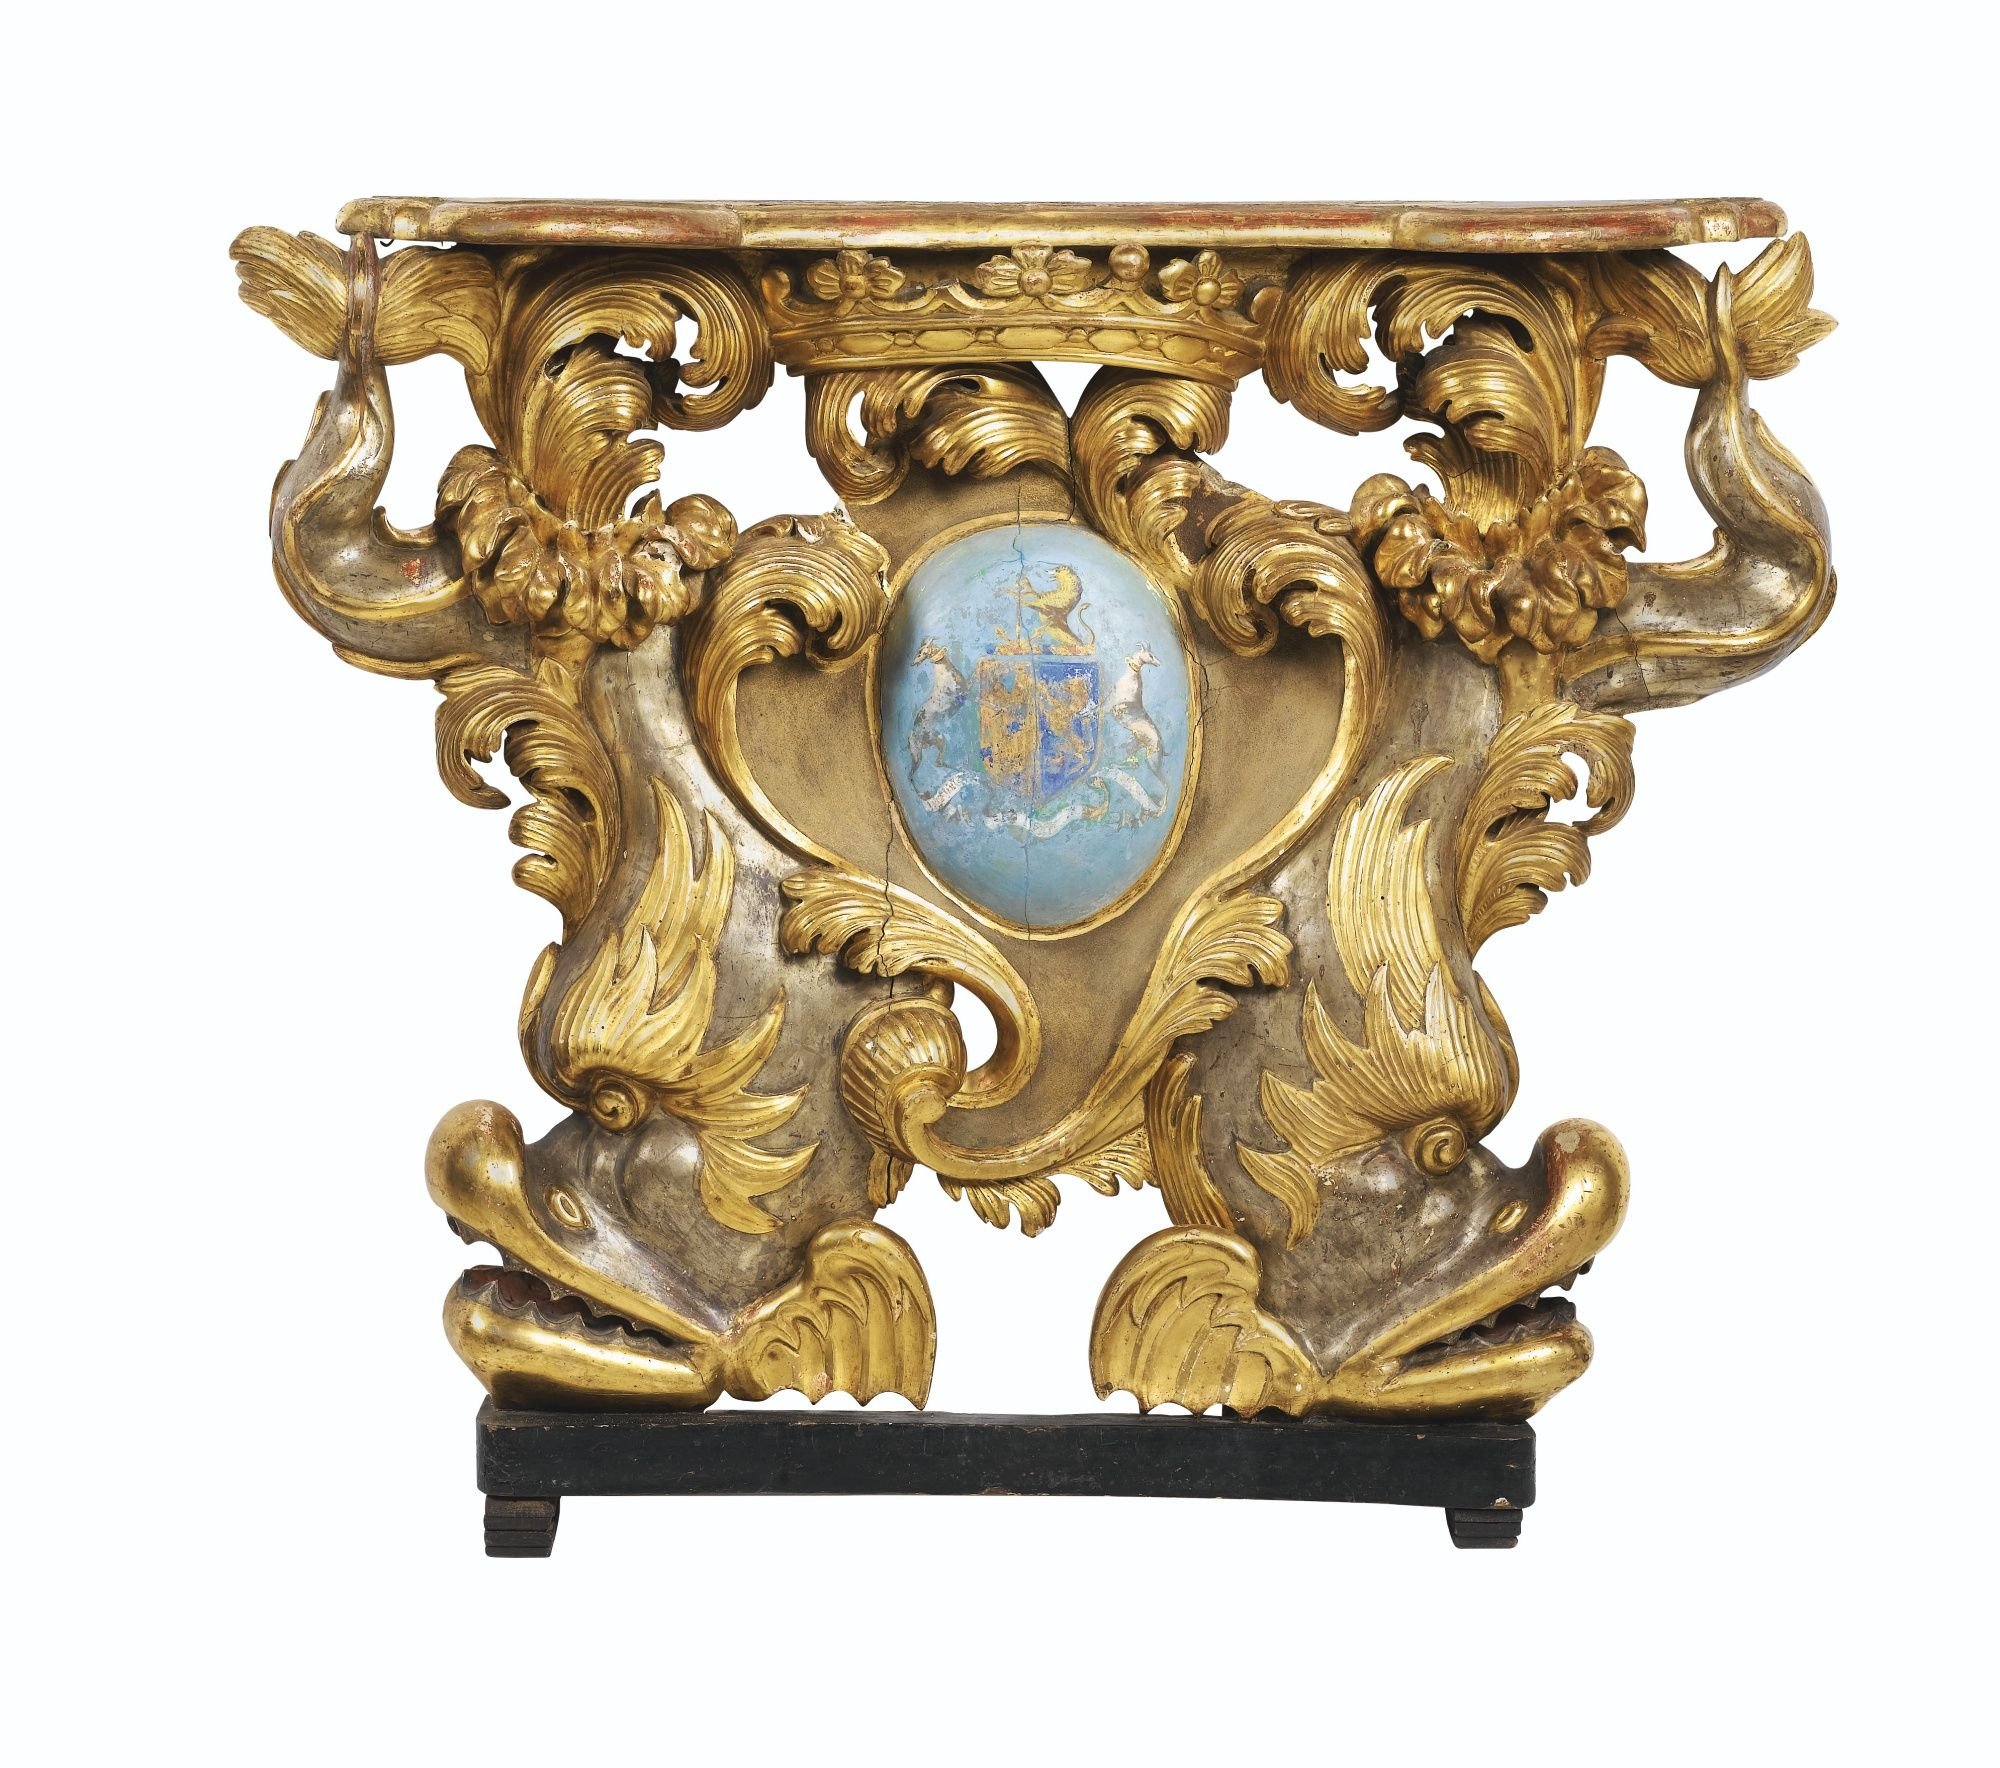 A SILVER-GILT AND PARCEL GILT WOOD CONSOLE, GENOESE, MID 18TH CENTURY,Haut. 112 cm, larg. 117 cm, prof. 20 cm, Height 40 in; width 46 in; depht 8 in